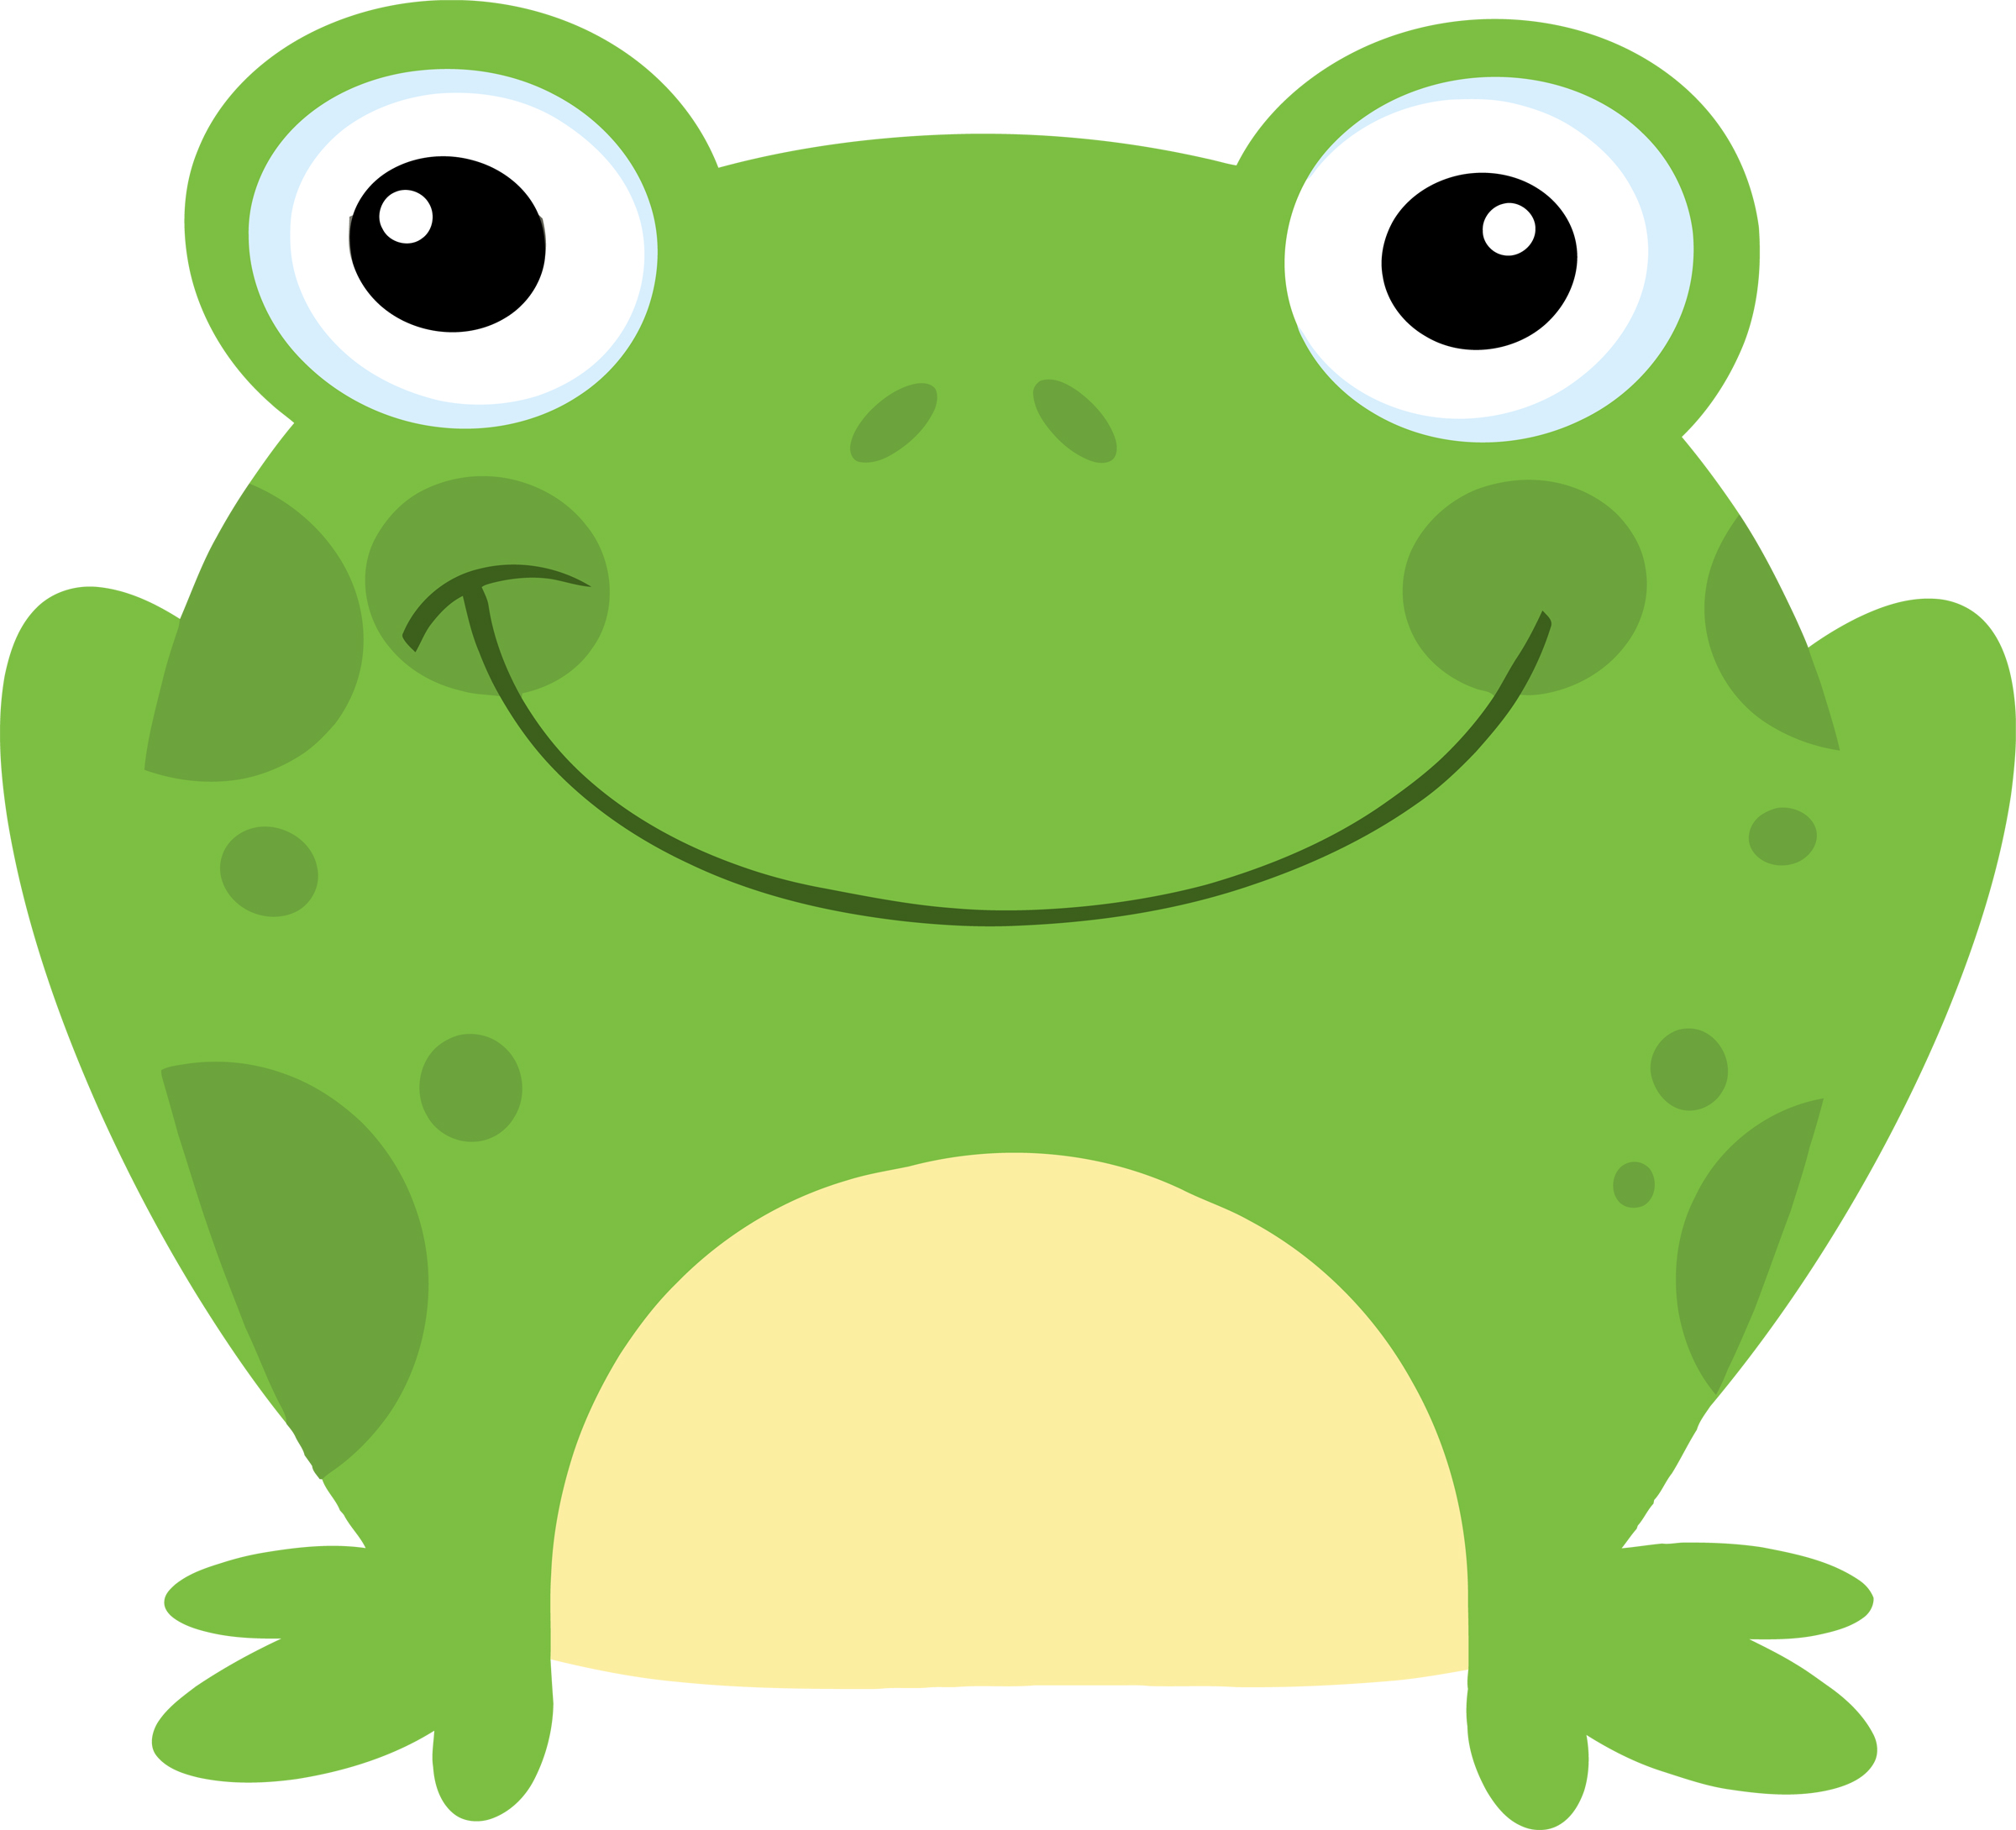 Free frog clipart clip art pictures graphics illustrations.